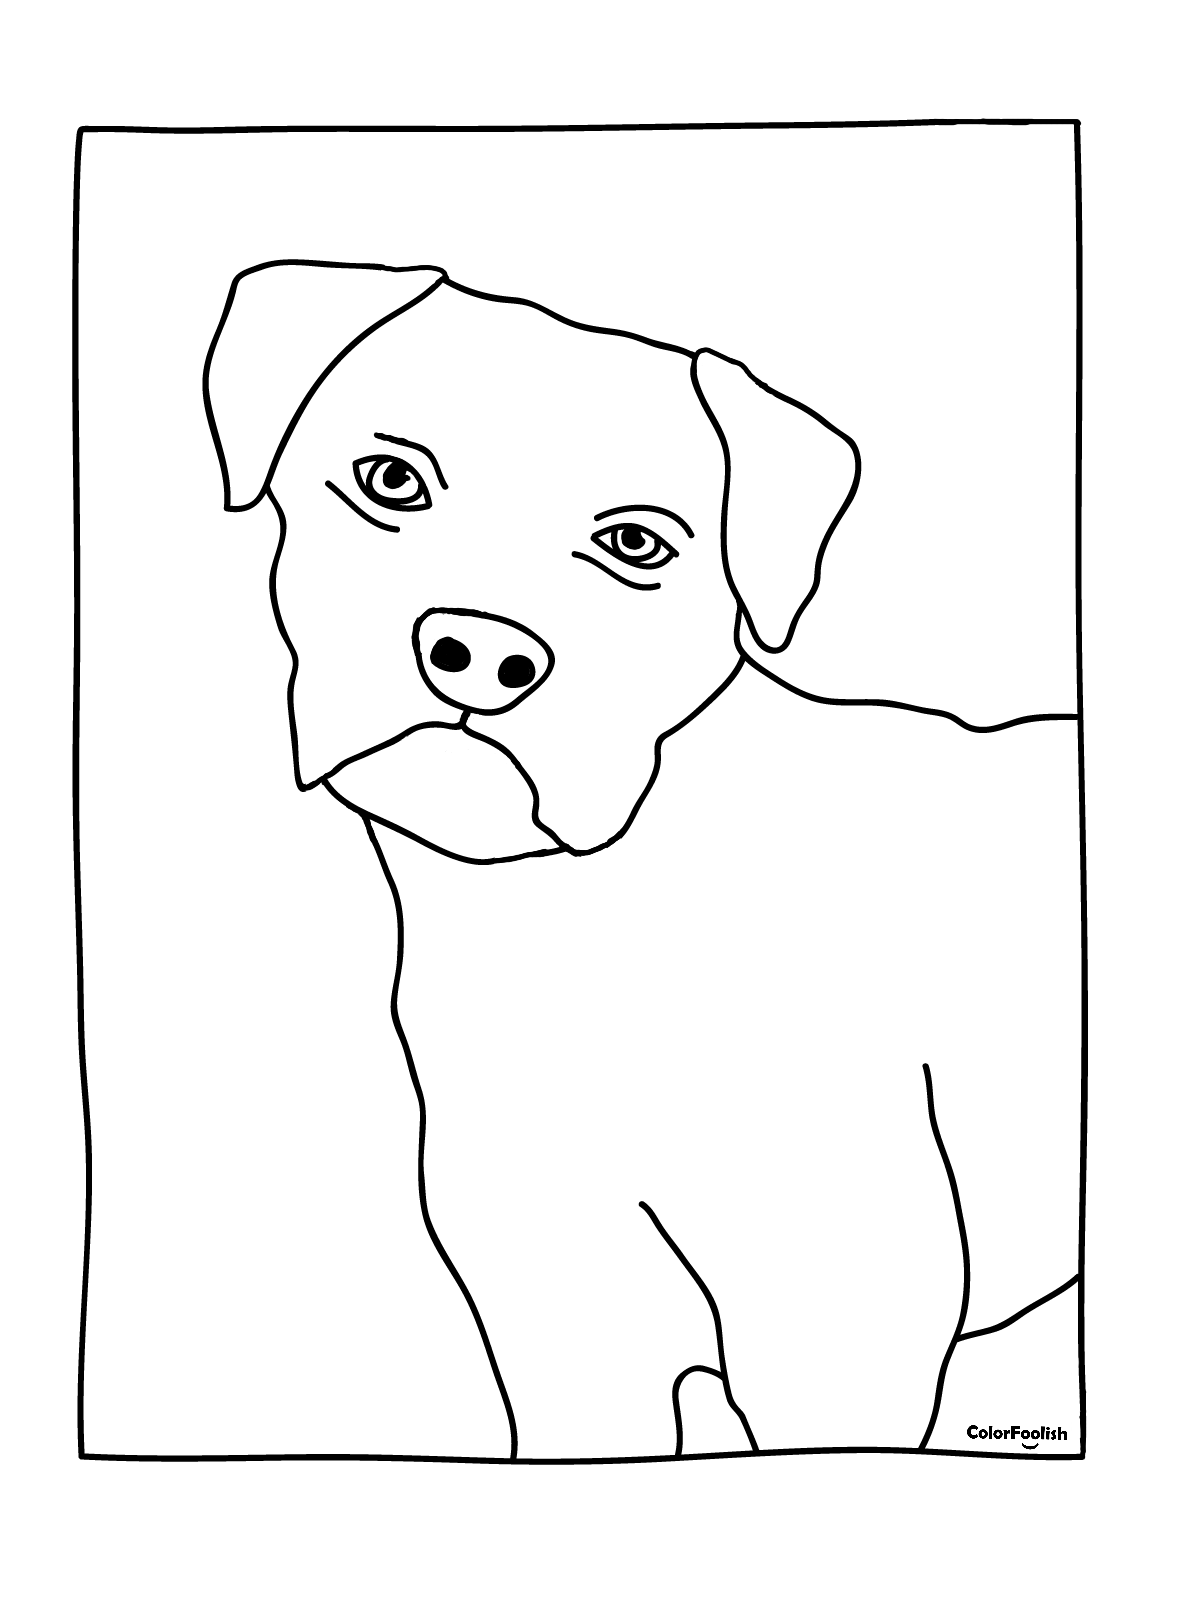 Coloring page of a fox terrier puppy